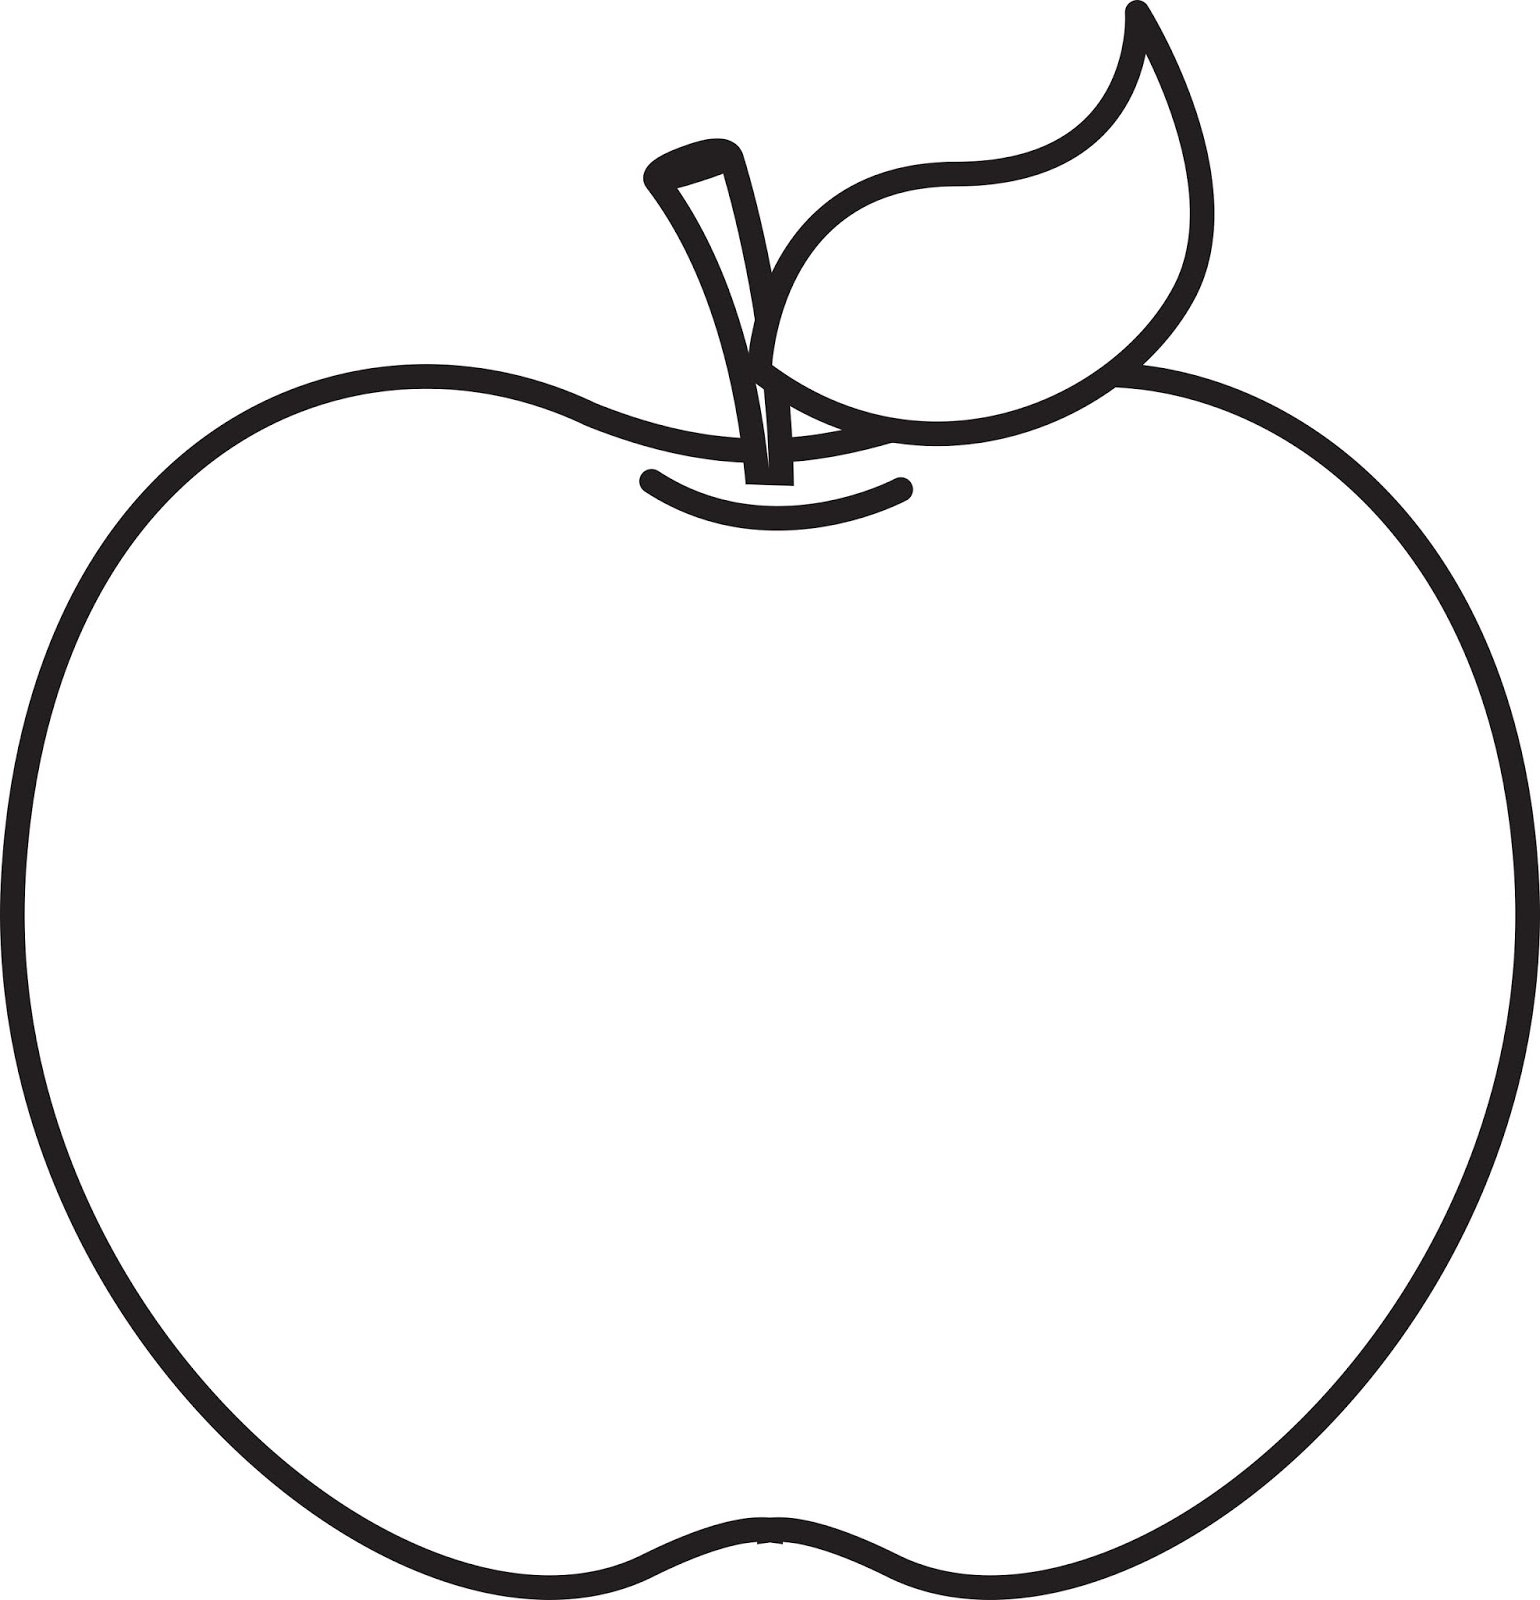 Apple clipart black and white Best of Apple Black And White Clipart.